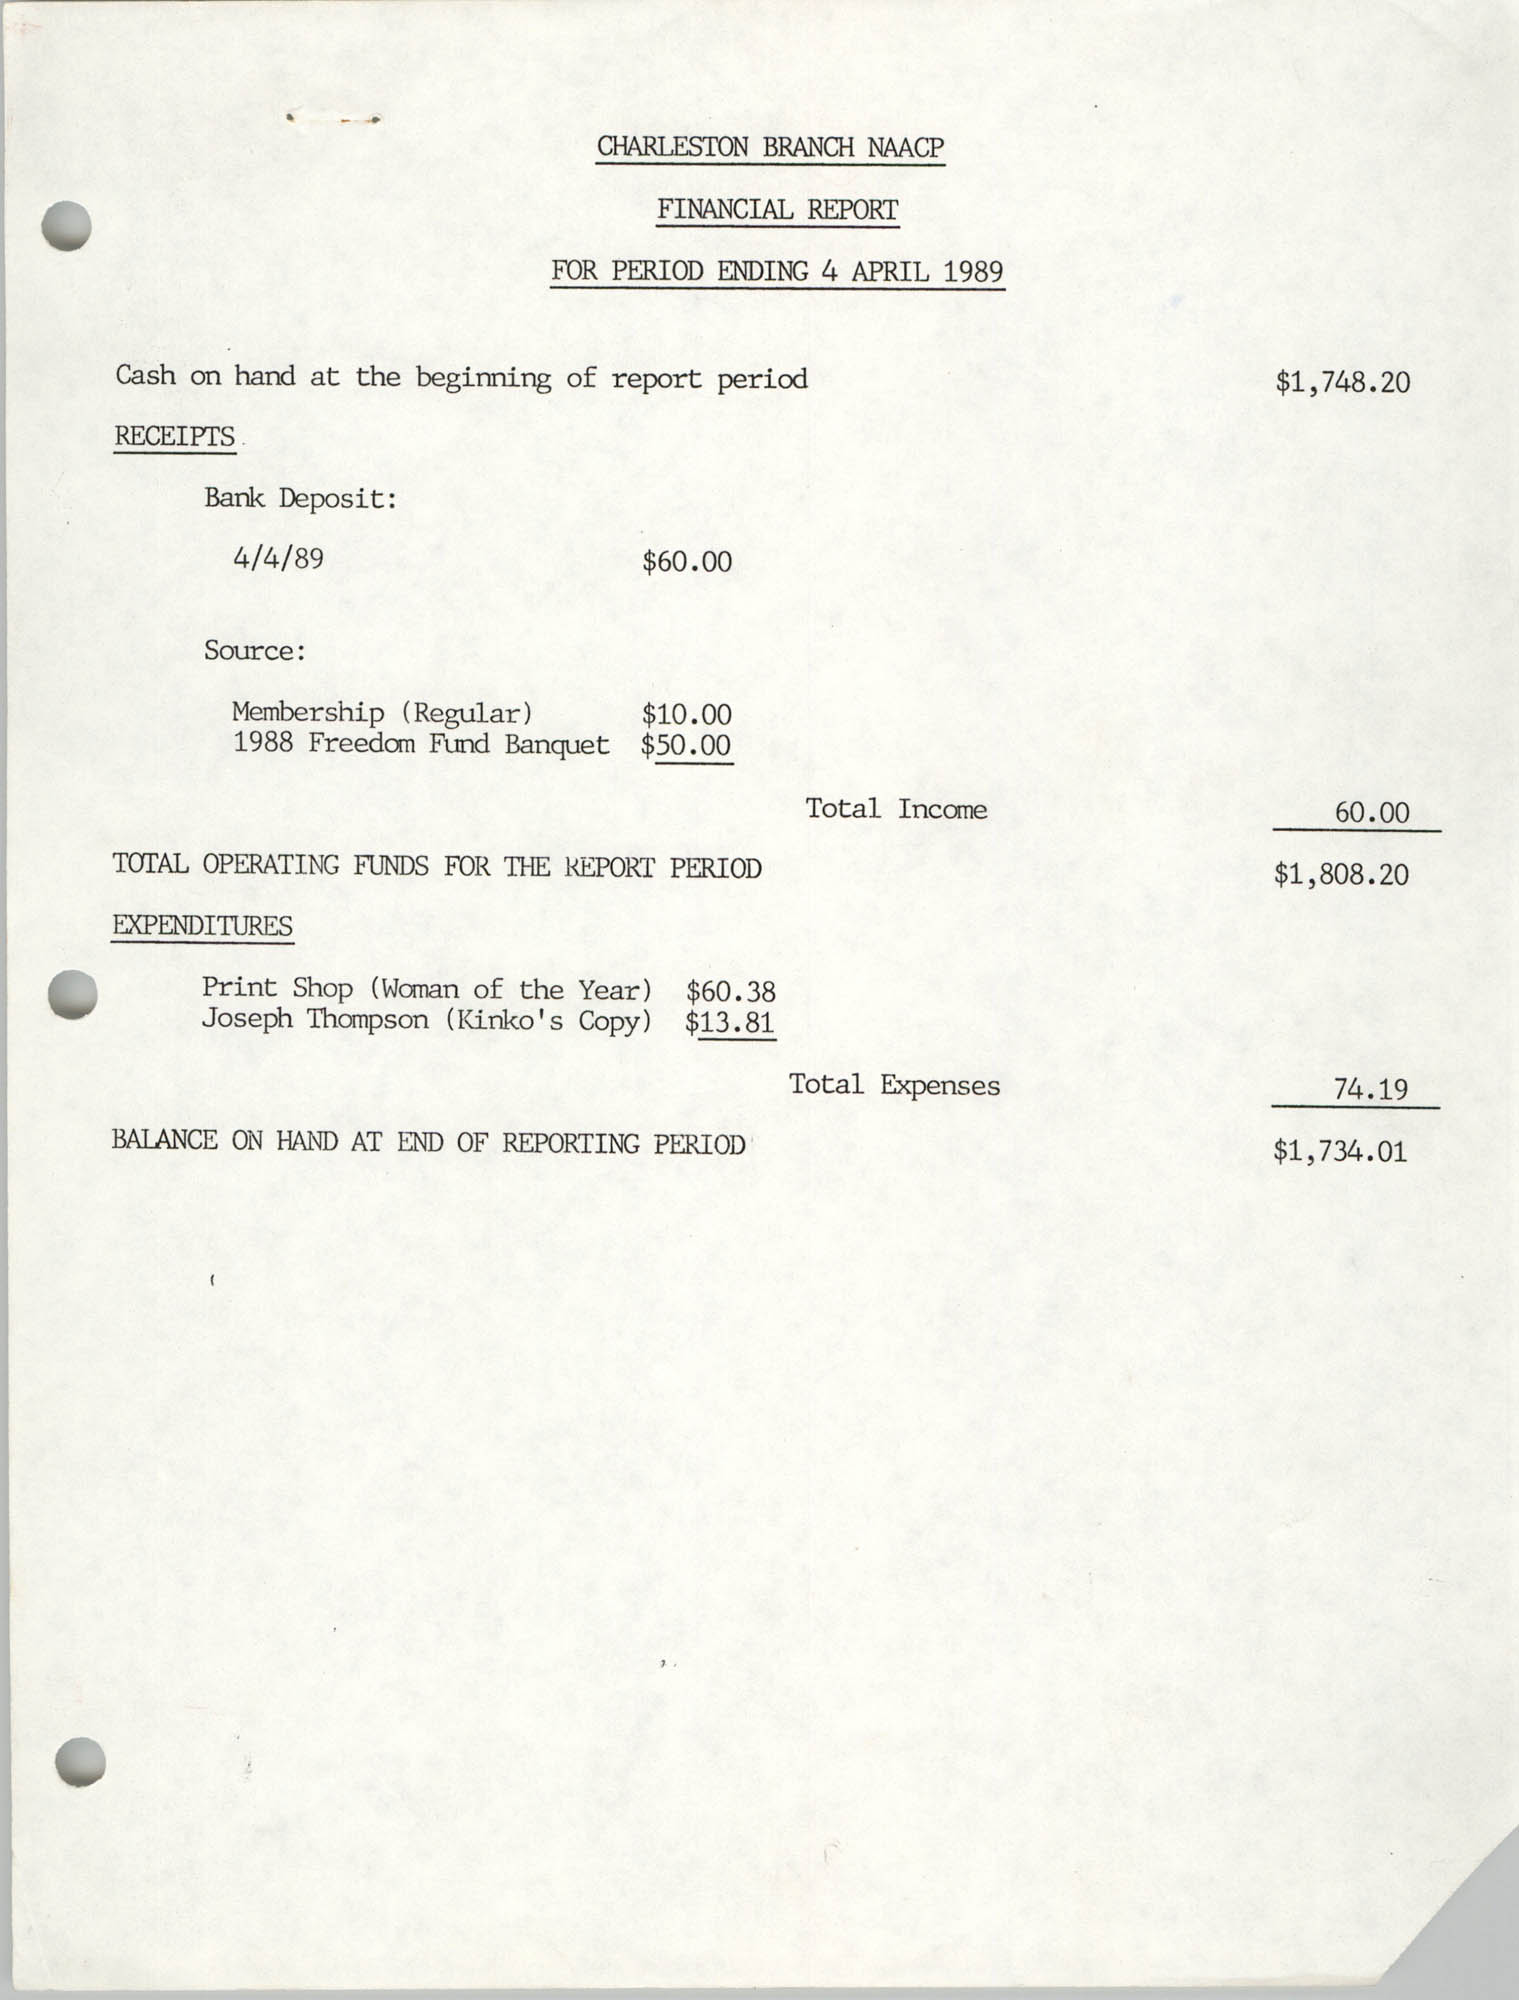 Charleston Branch of the NAACP Financial Report, April 4, 1989